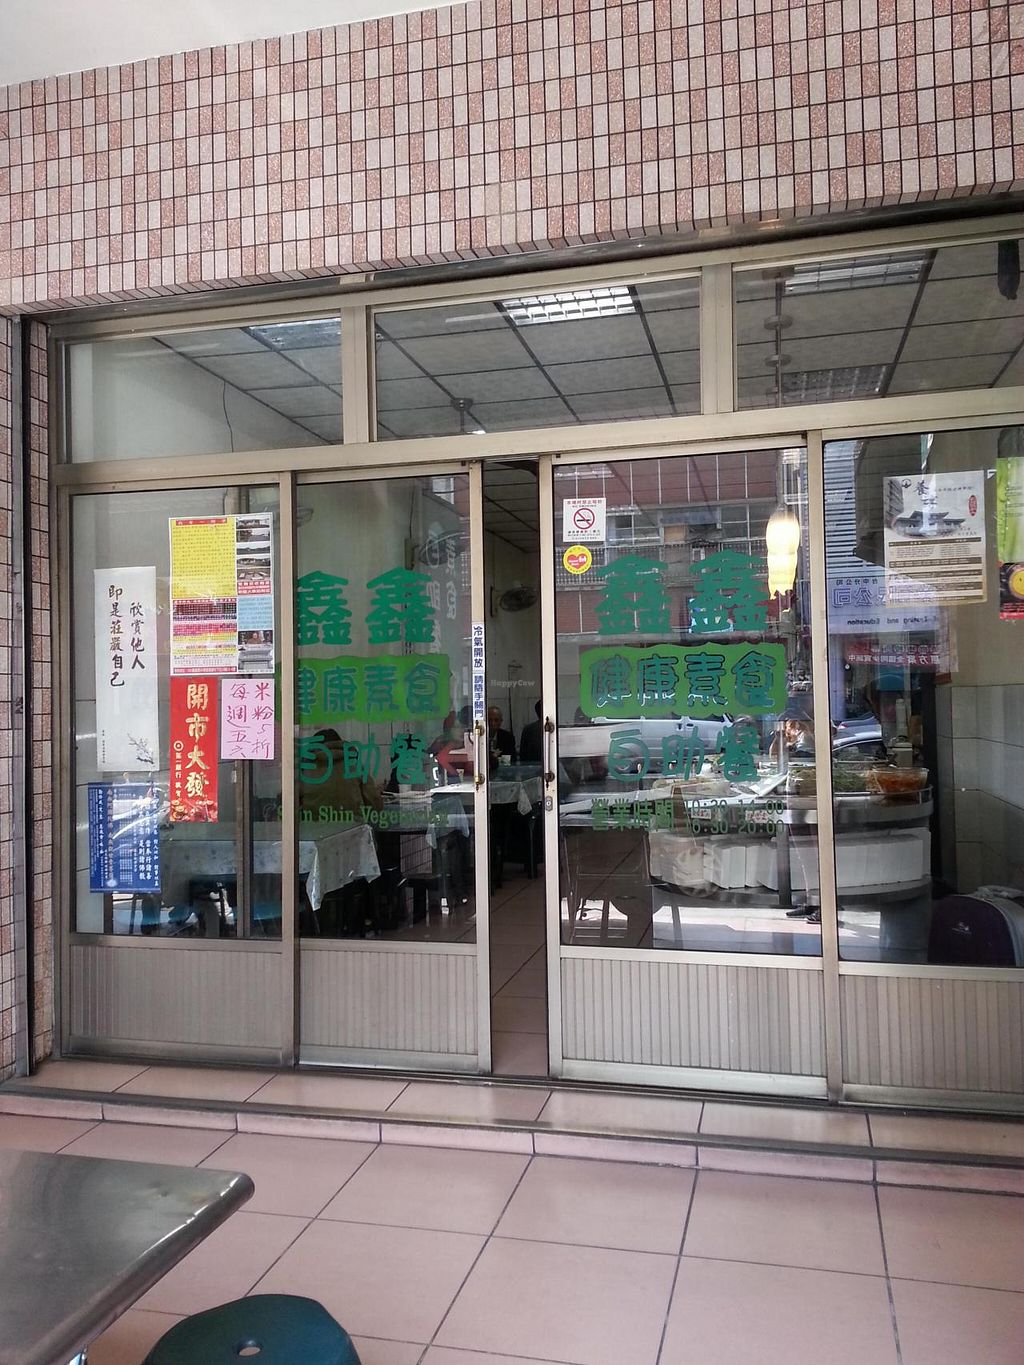 """Photo of Shin Shin Restaurant  by <a href=""""/members/profile/Nikki1801"""">Nikki1801</a> <br/>the shop <br/> March 21, 2015  - <a href='/contact/abuse/image/56491/96368'>Report</a>"""